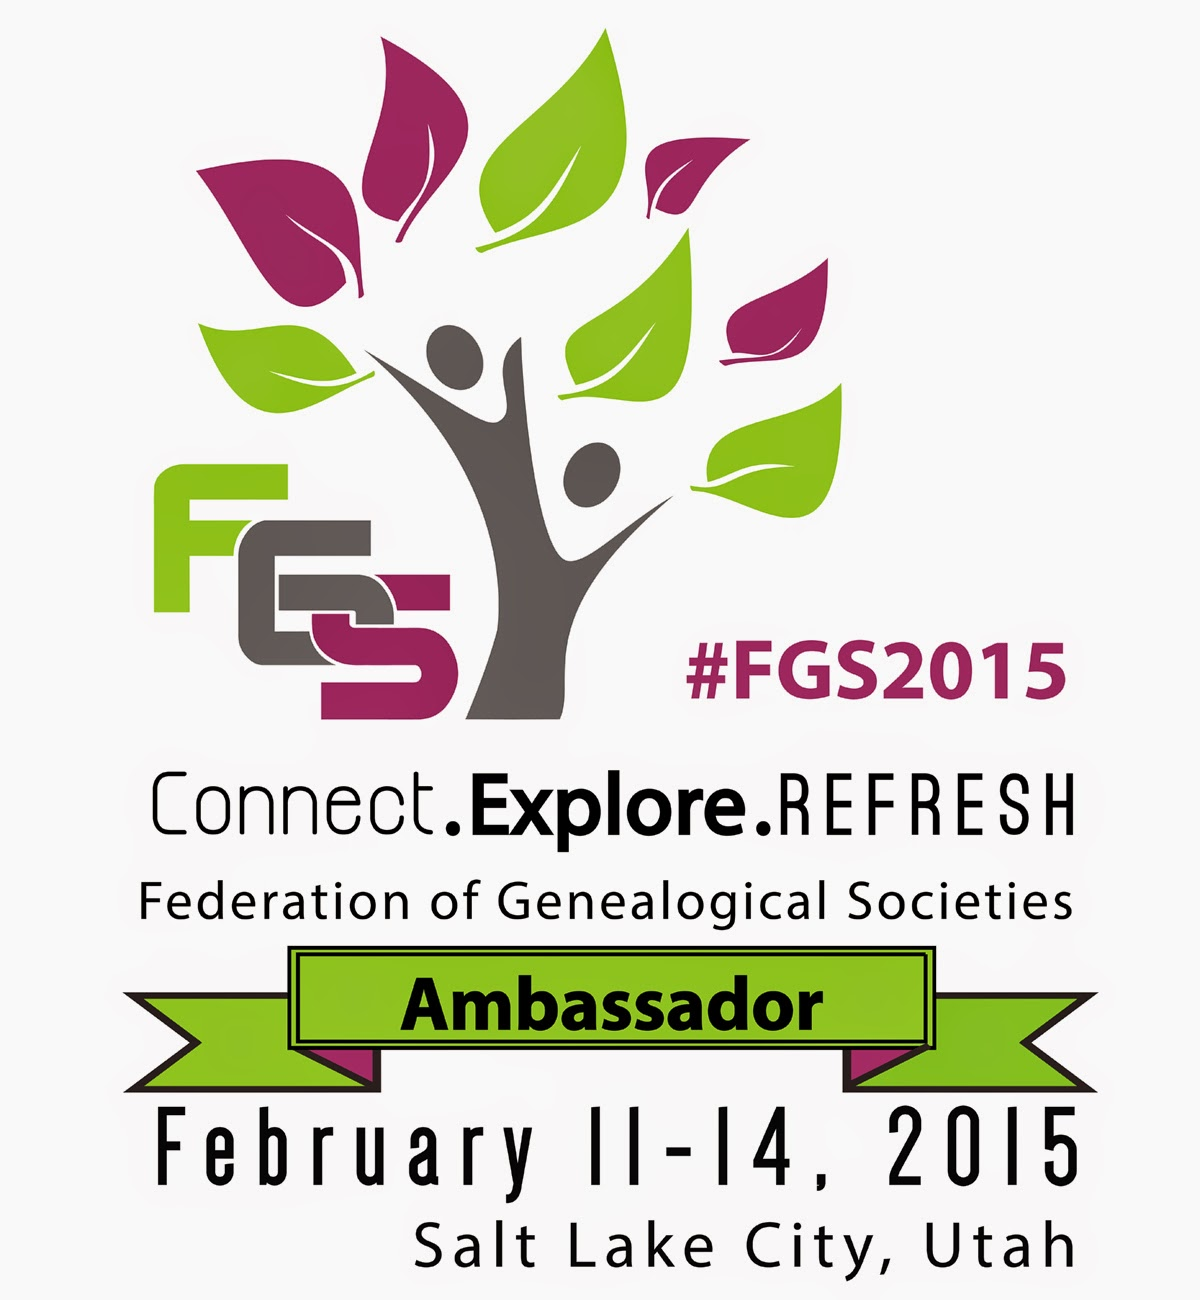 Your 2015 FGS Ambassador!